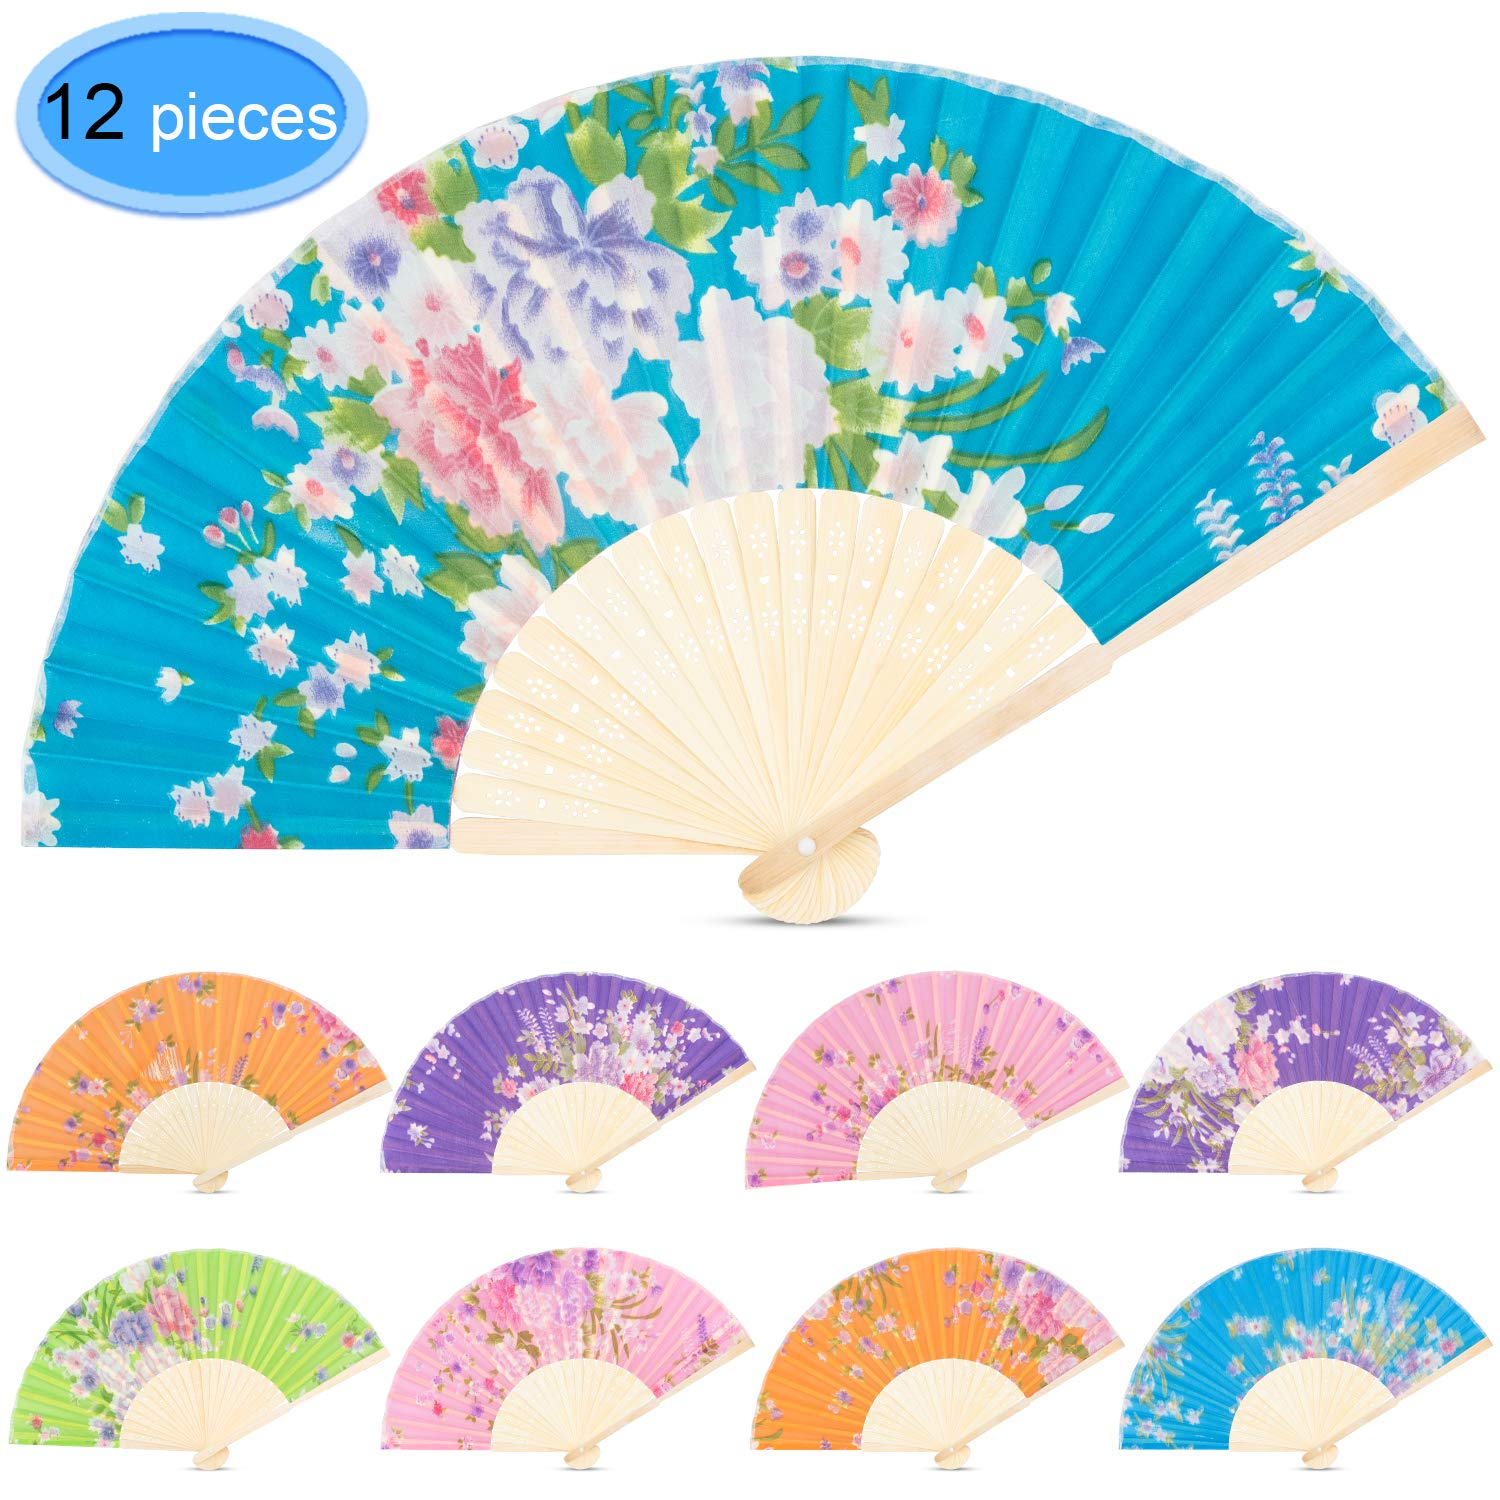 Wpxmer 12 Pack Multicolor Handheld Folded Fan Bamboo Folding Paper Hand Held Fans for Wedding Party and Home DIY Decoration